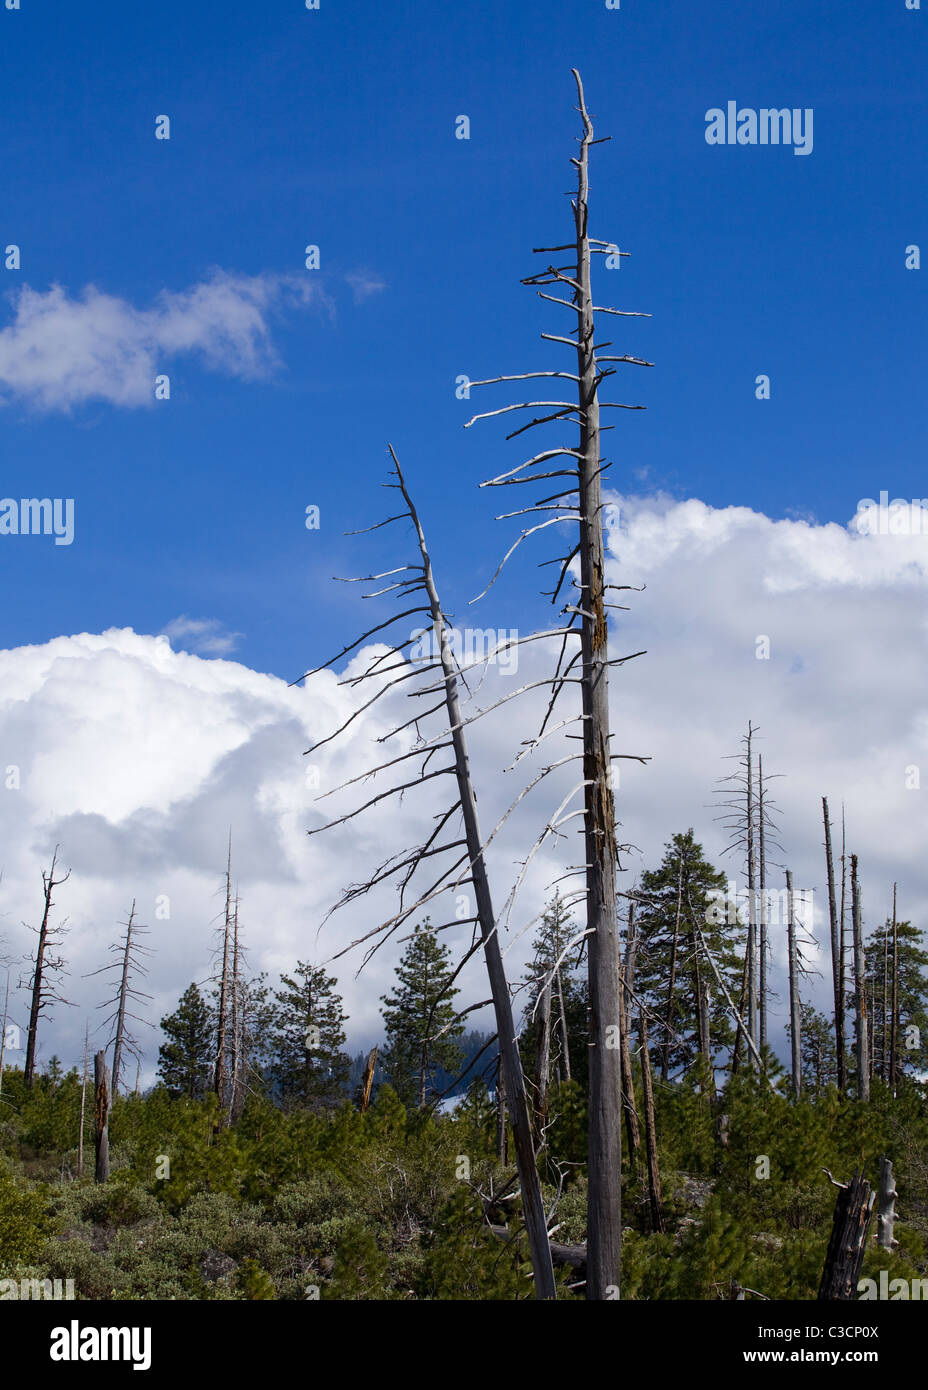 Trees burned in forest fire, against blue cloudy sky - Sierra Nevada mountains, California USA - Stock Image